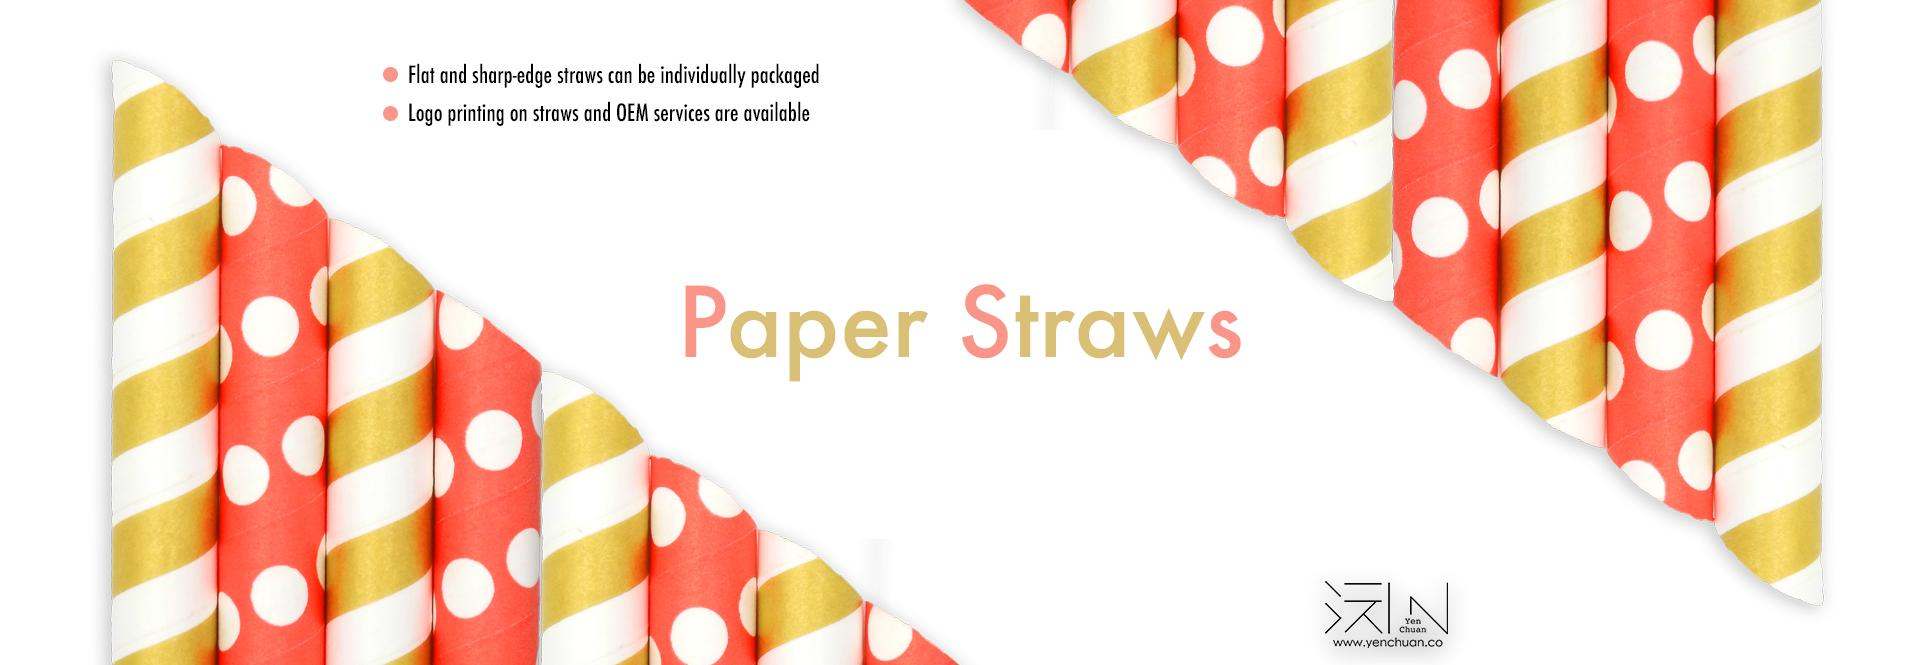 Paper straw banner